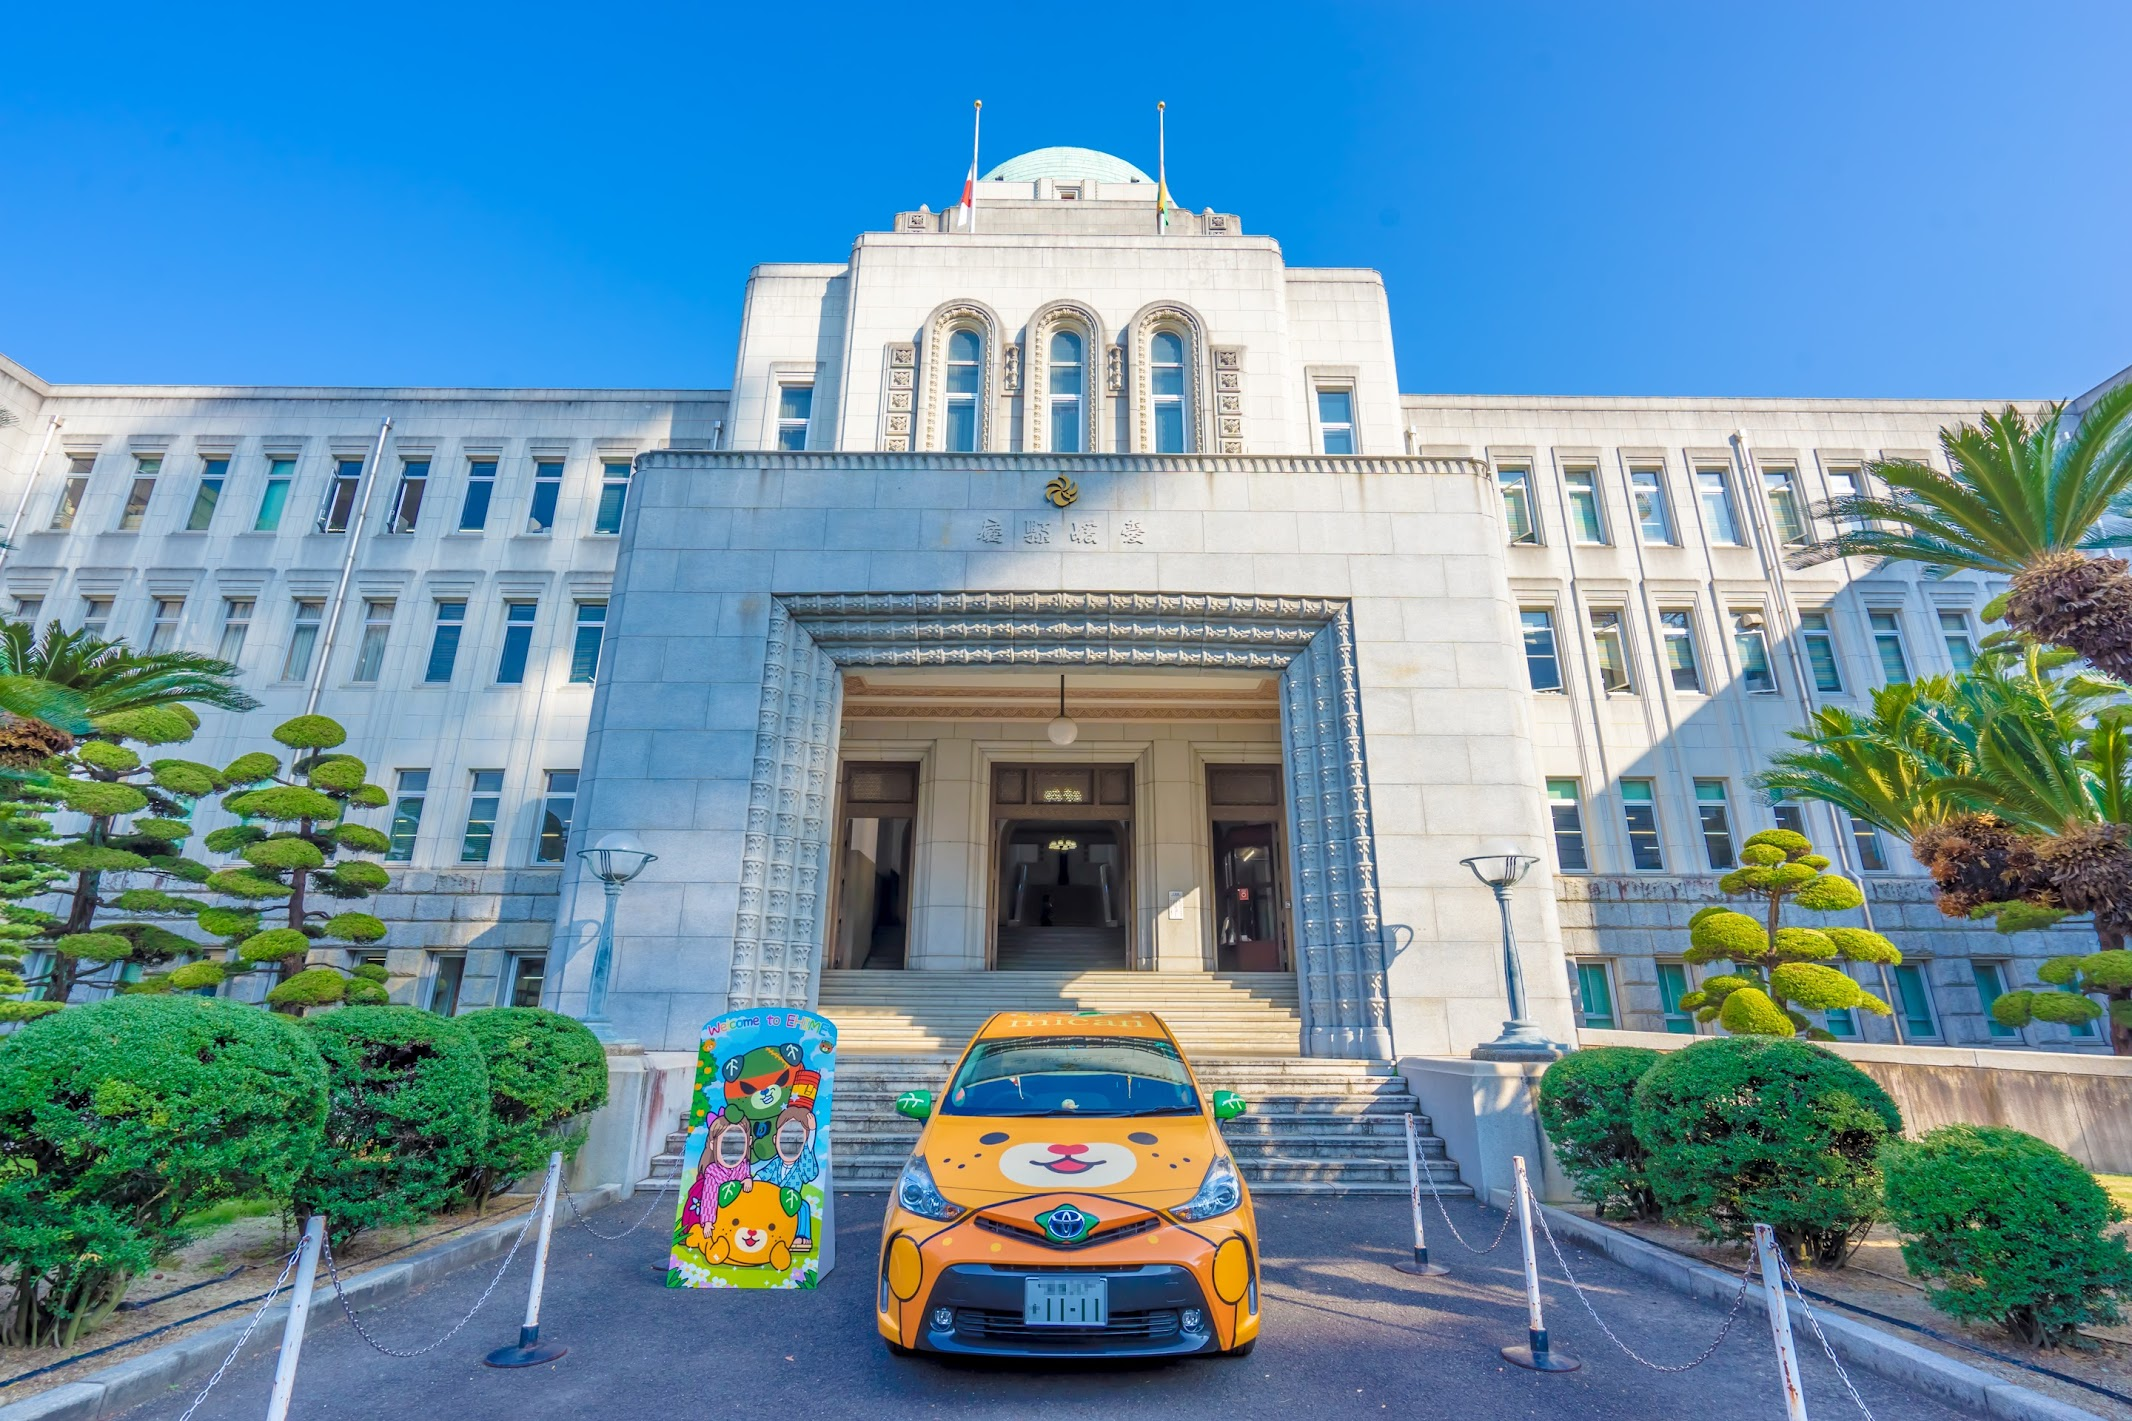 Ehime prefectural government office